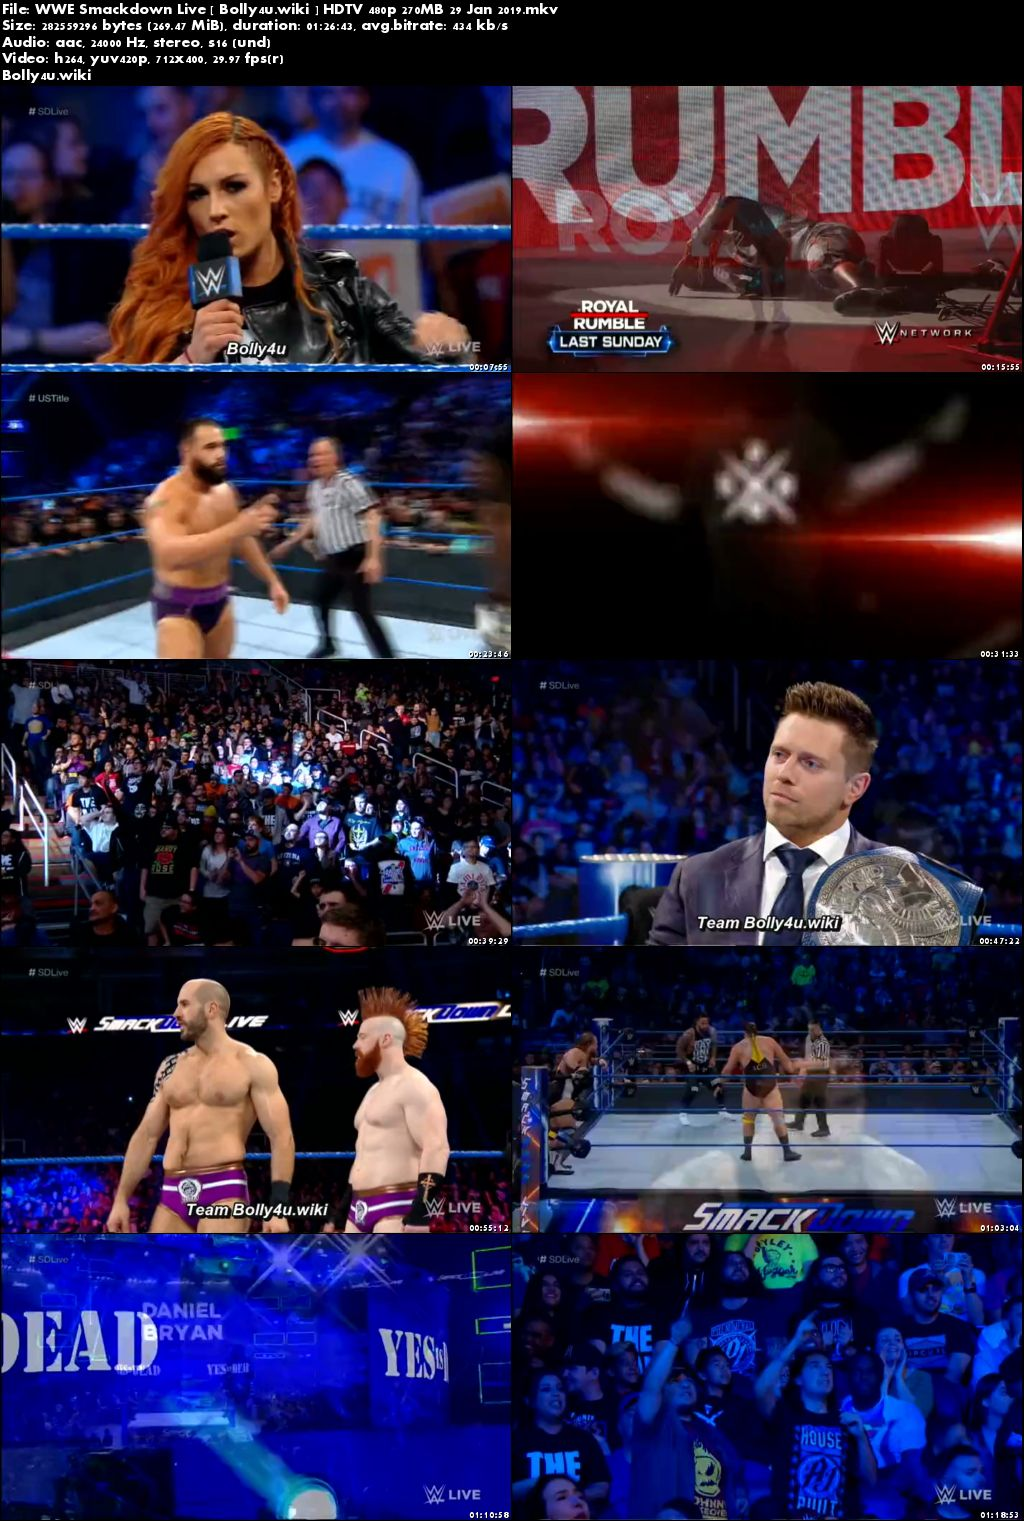 WWE Smackdown Live HDTV 480p 270MB 29 Jan 2019 Download